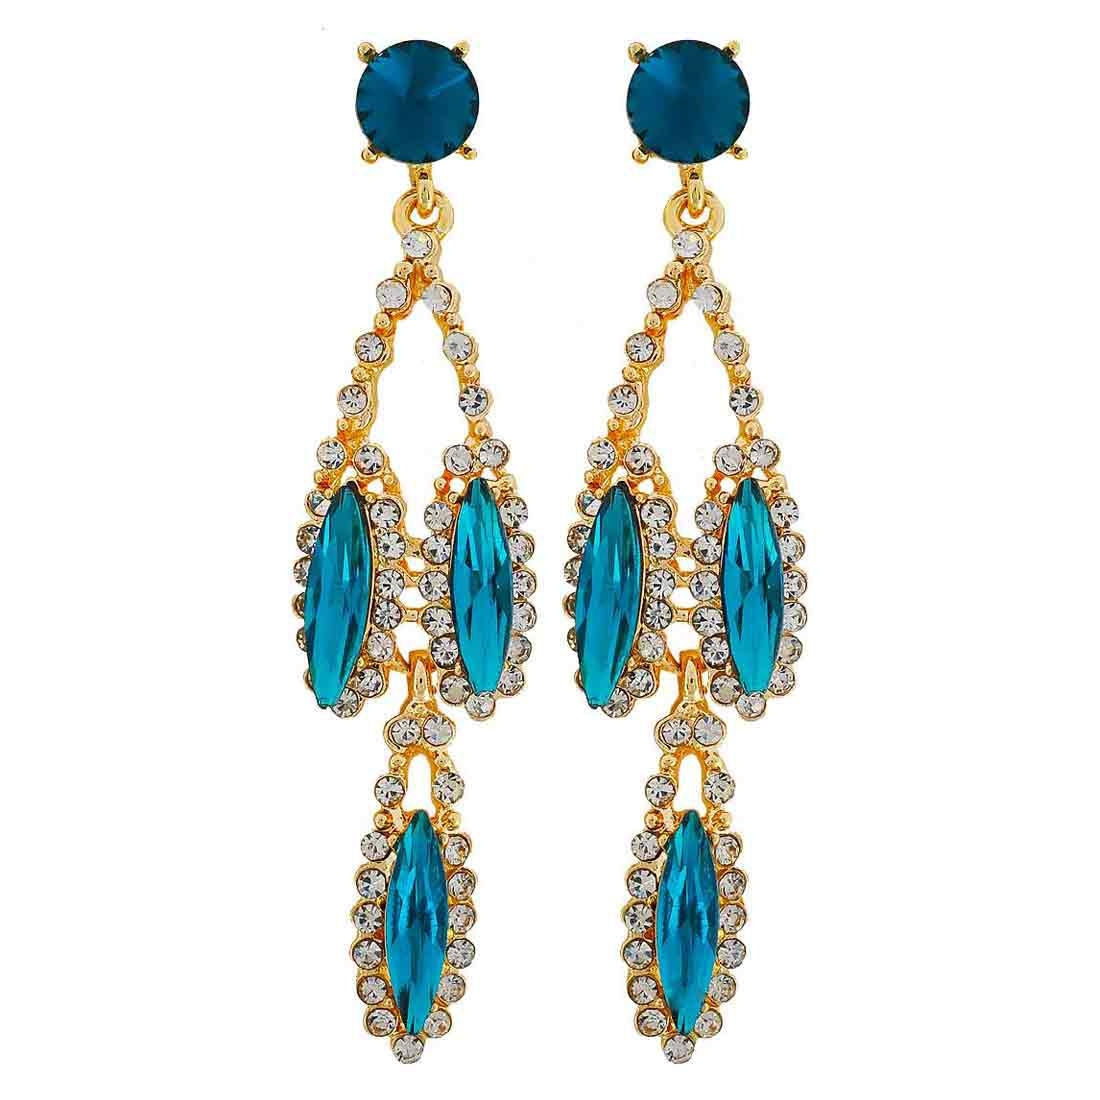 Maayra Party Earrings Alloy Dangler Drop Blue Classic Stones Jewellery